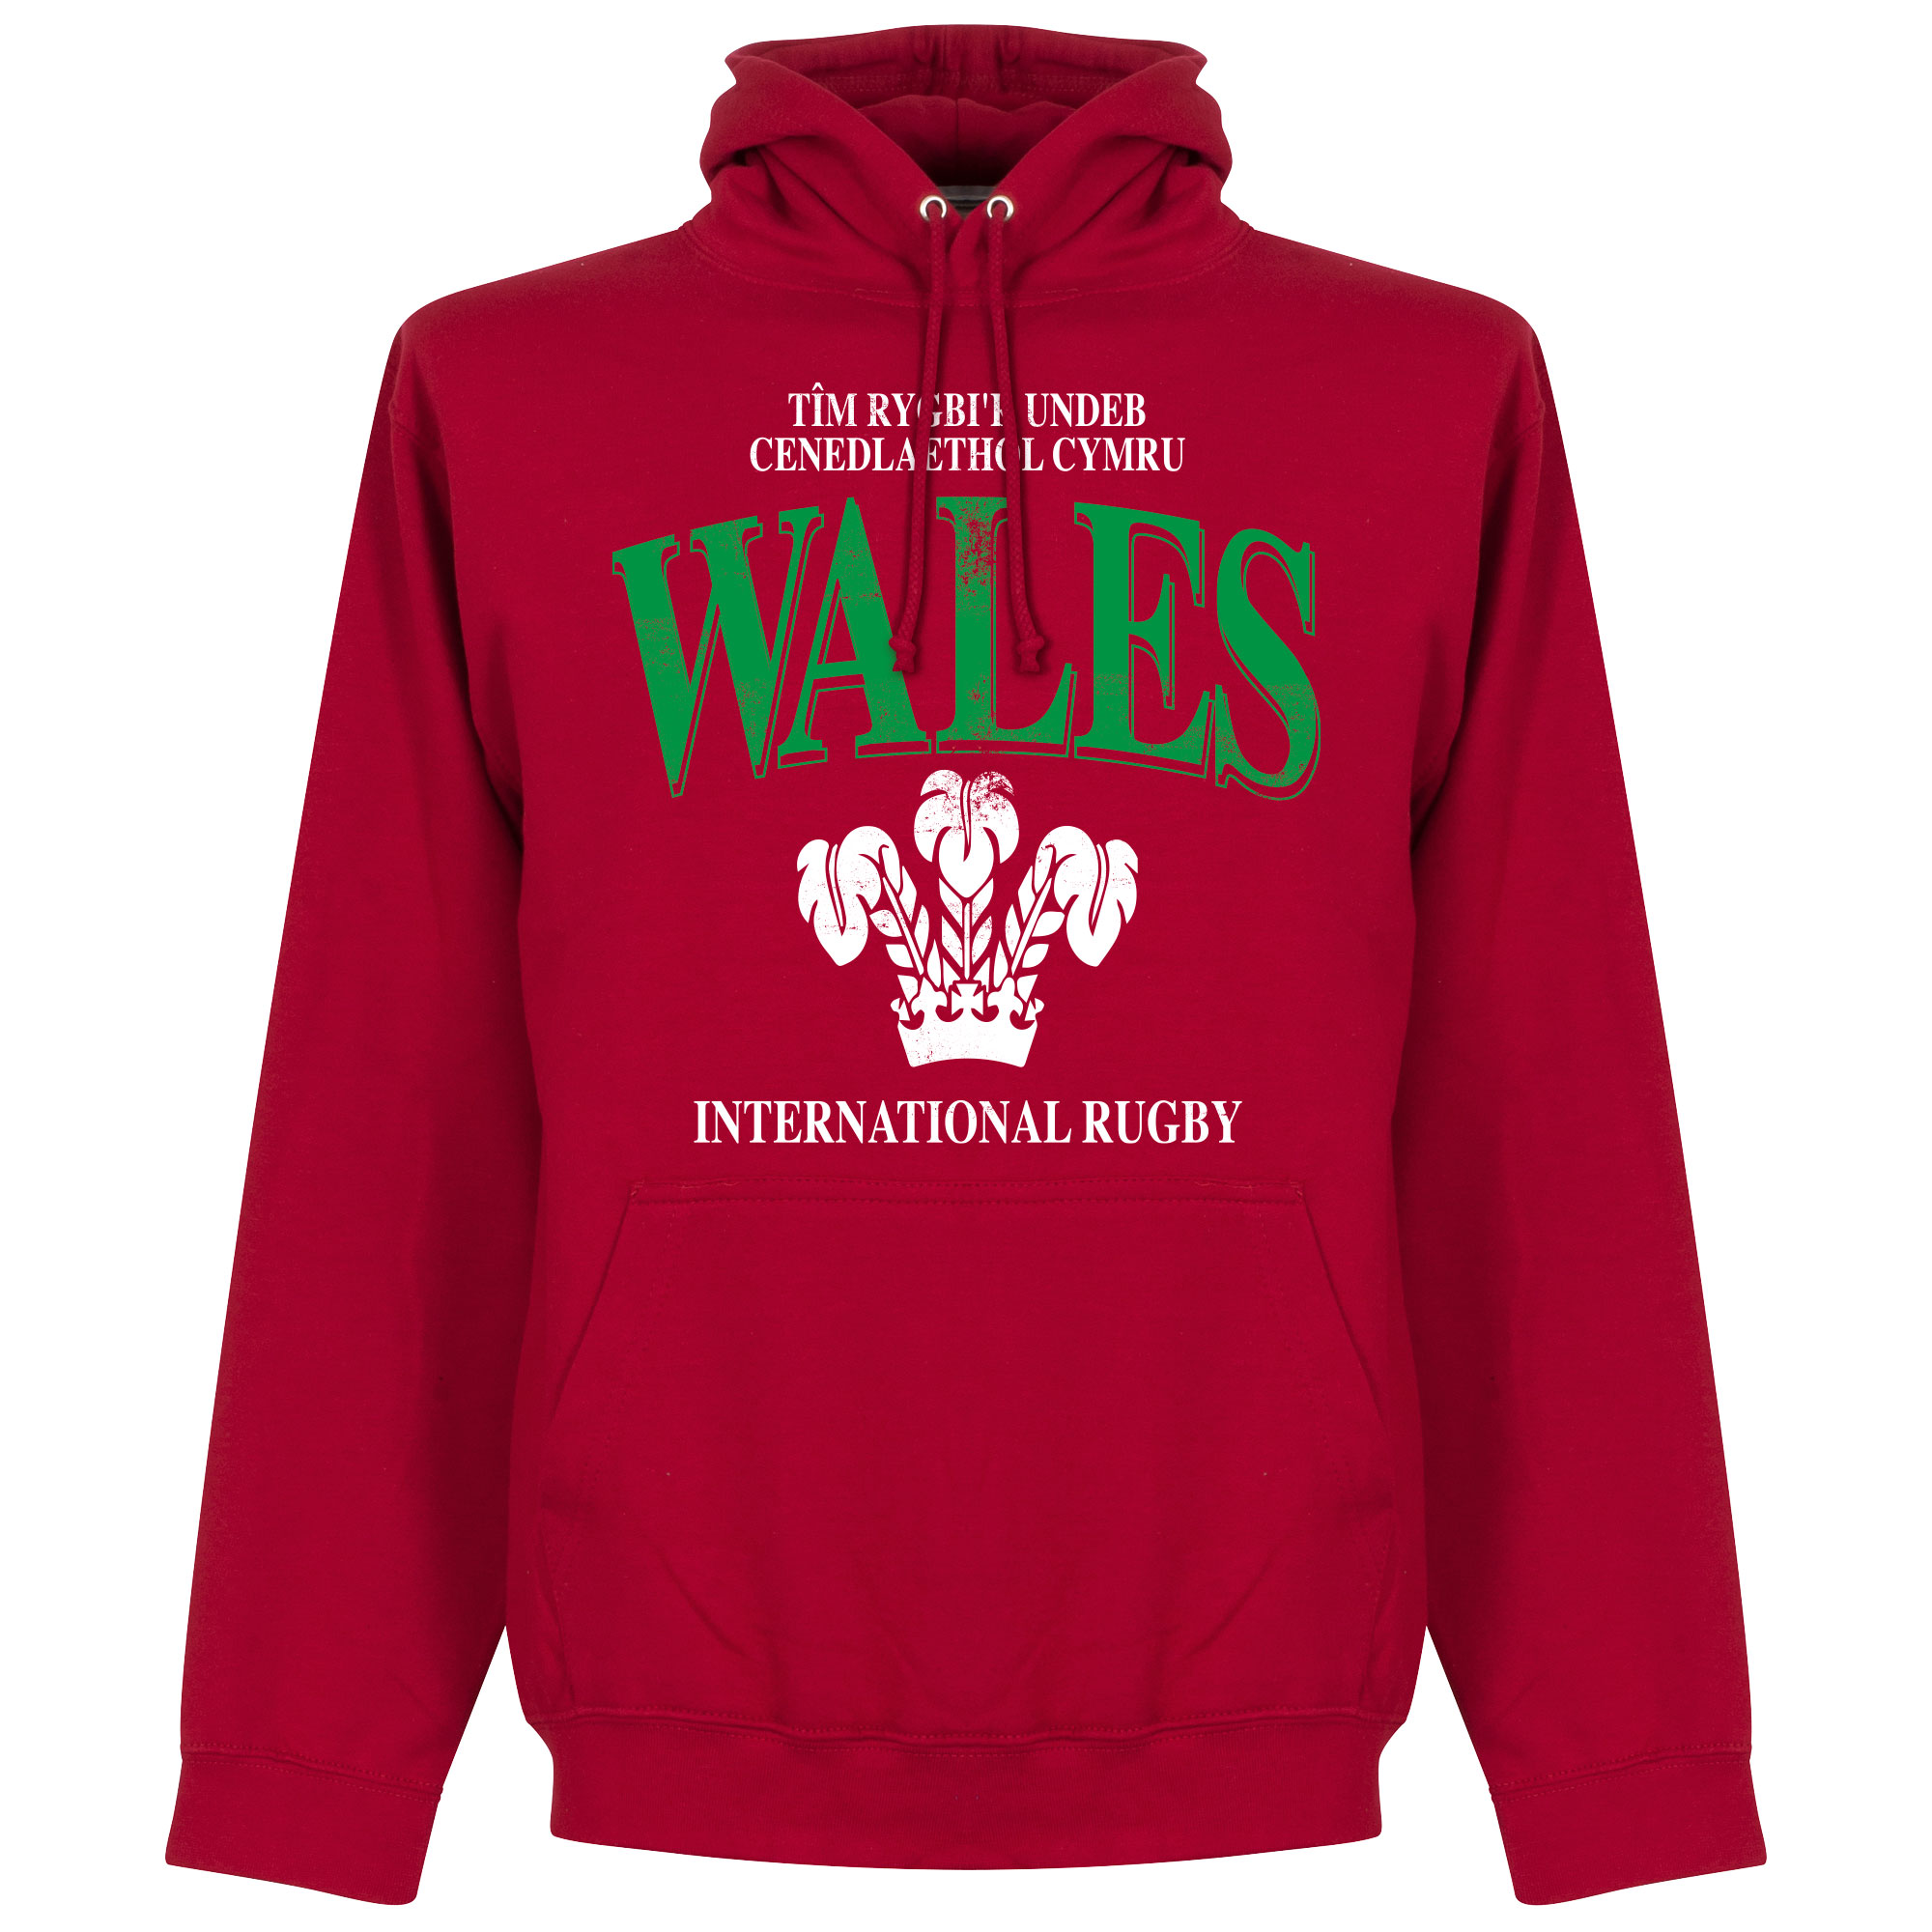 Wales Rugby Hooded Sweater - Rood